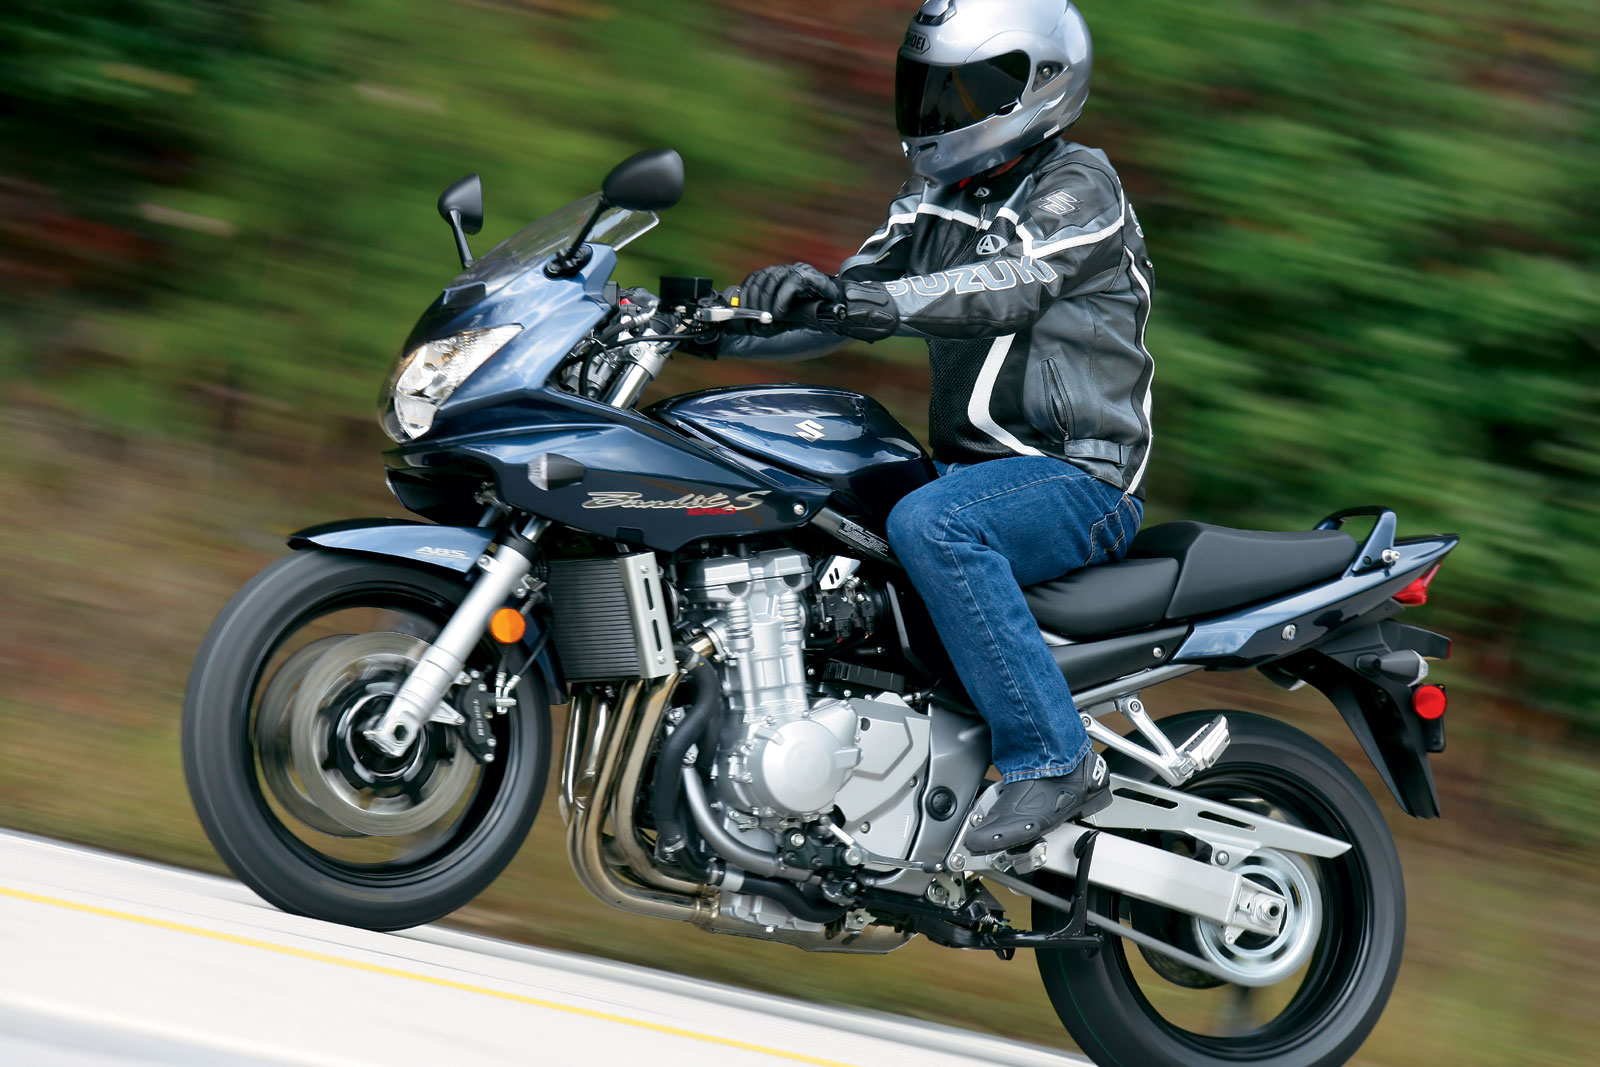 2008 suzuki gsf 1250 s abs pics specs and information. Black Bedroom Furniture Sets. Home Design Ideas